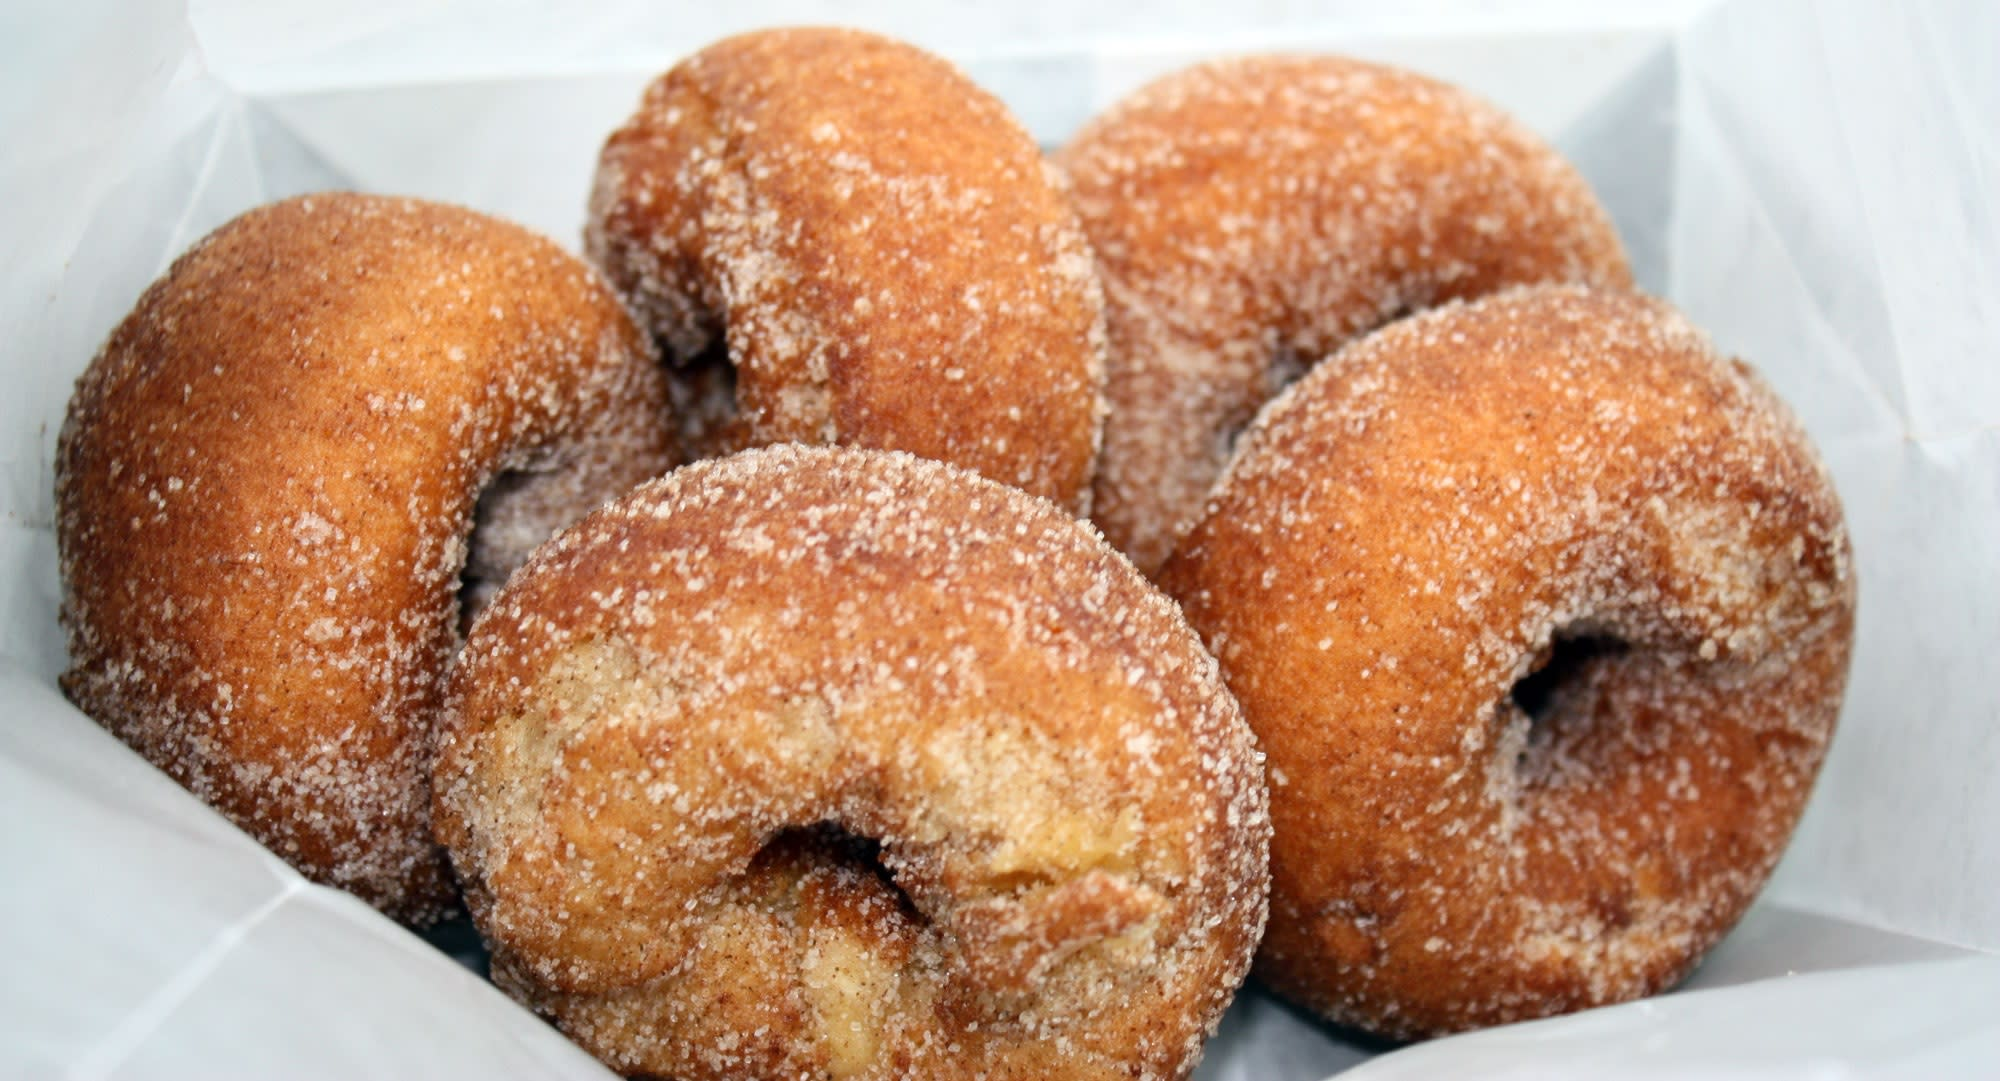 Apple cider donuts are just one fall treat from Flinchbaurg's Orchard & Farm Market